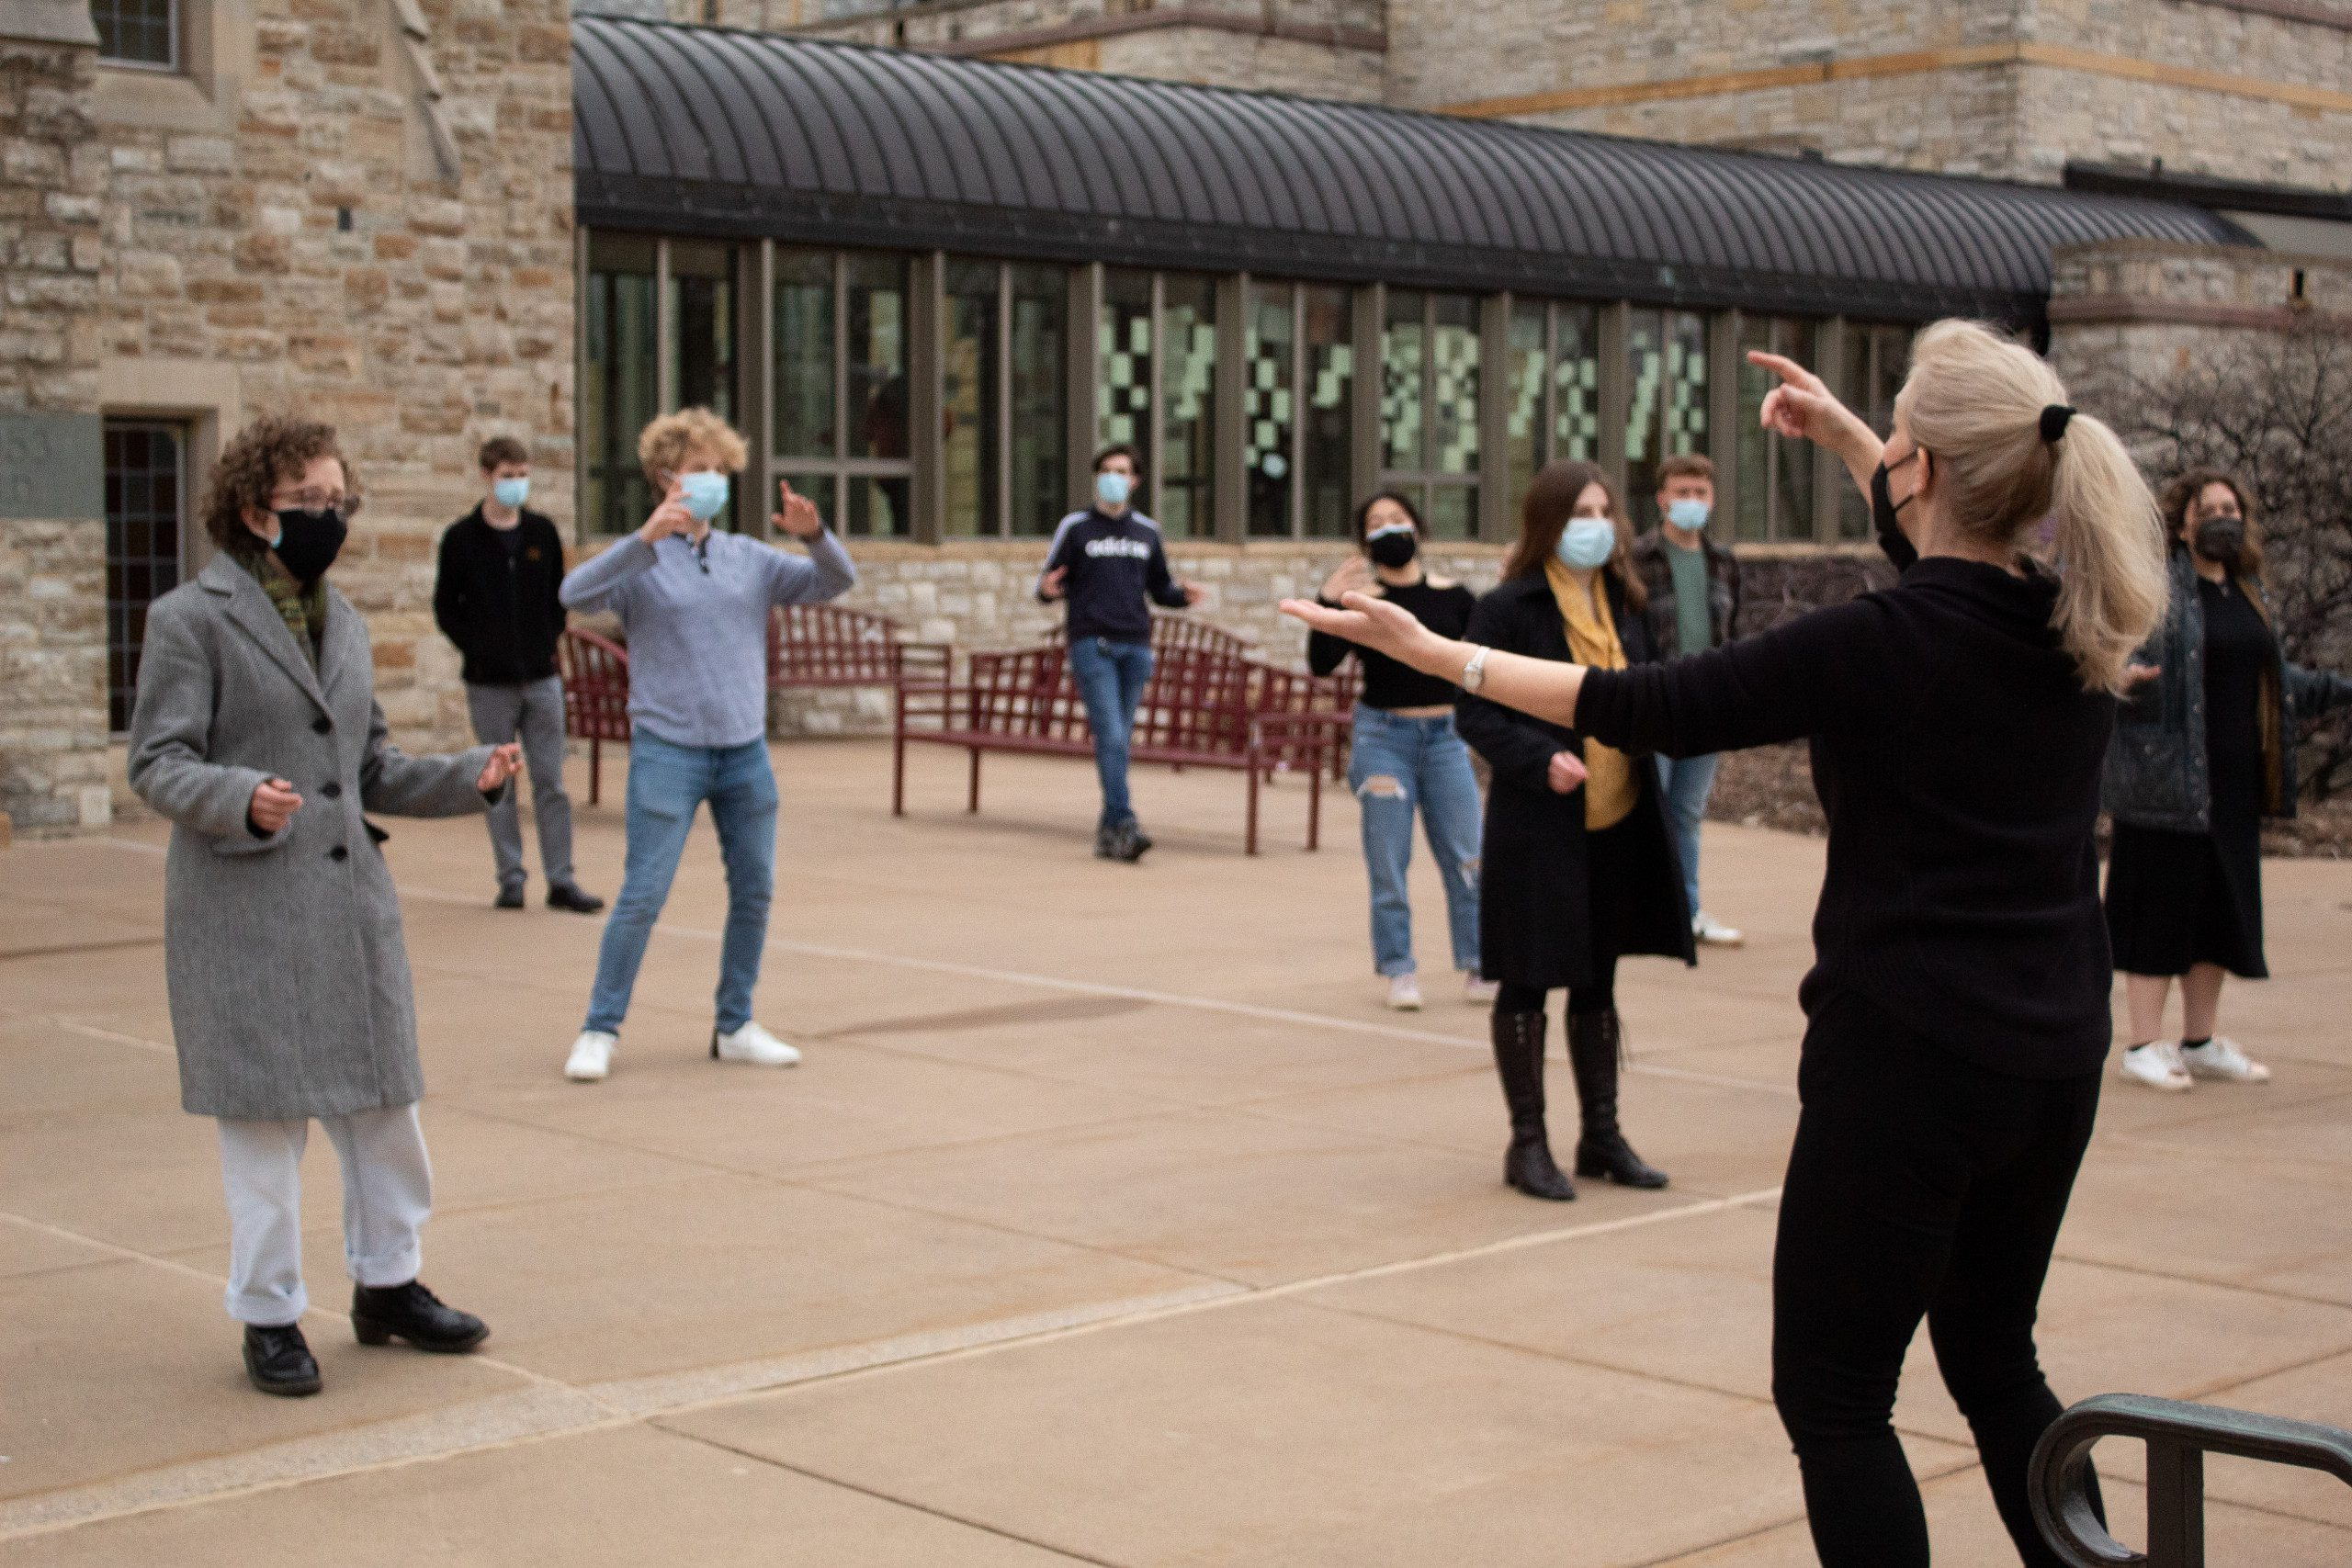 Music faculty member Therees Hibbard leads the St. Olaf Chamber Singers in rehearsal outside of Boe Memorial Chapel.